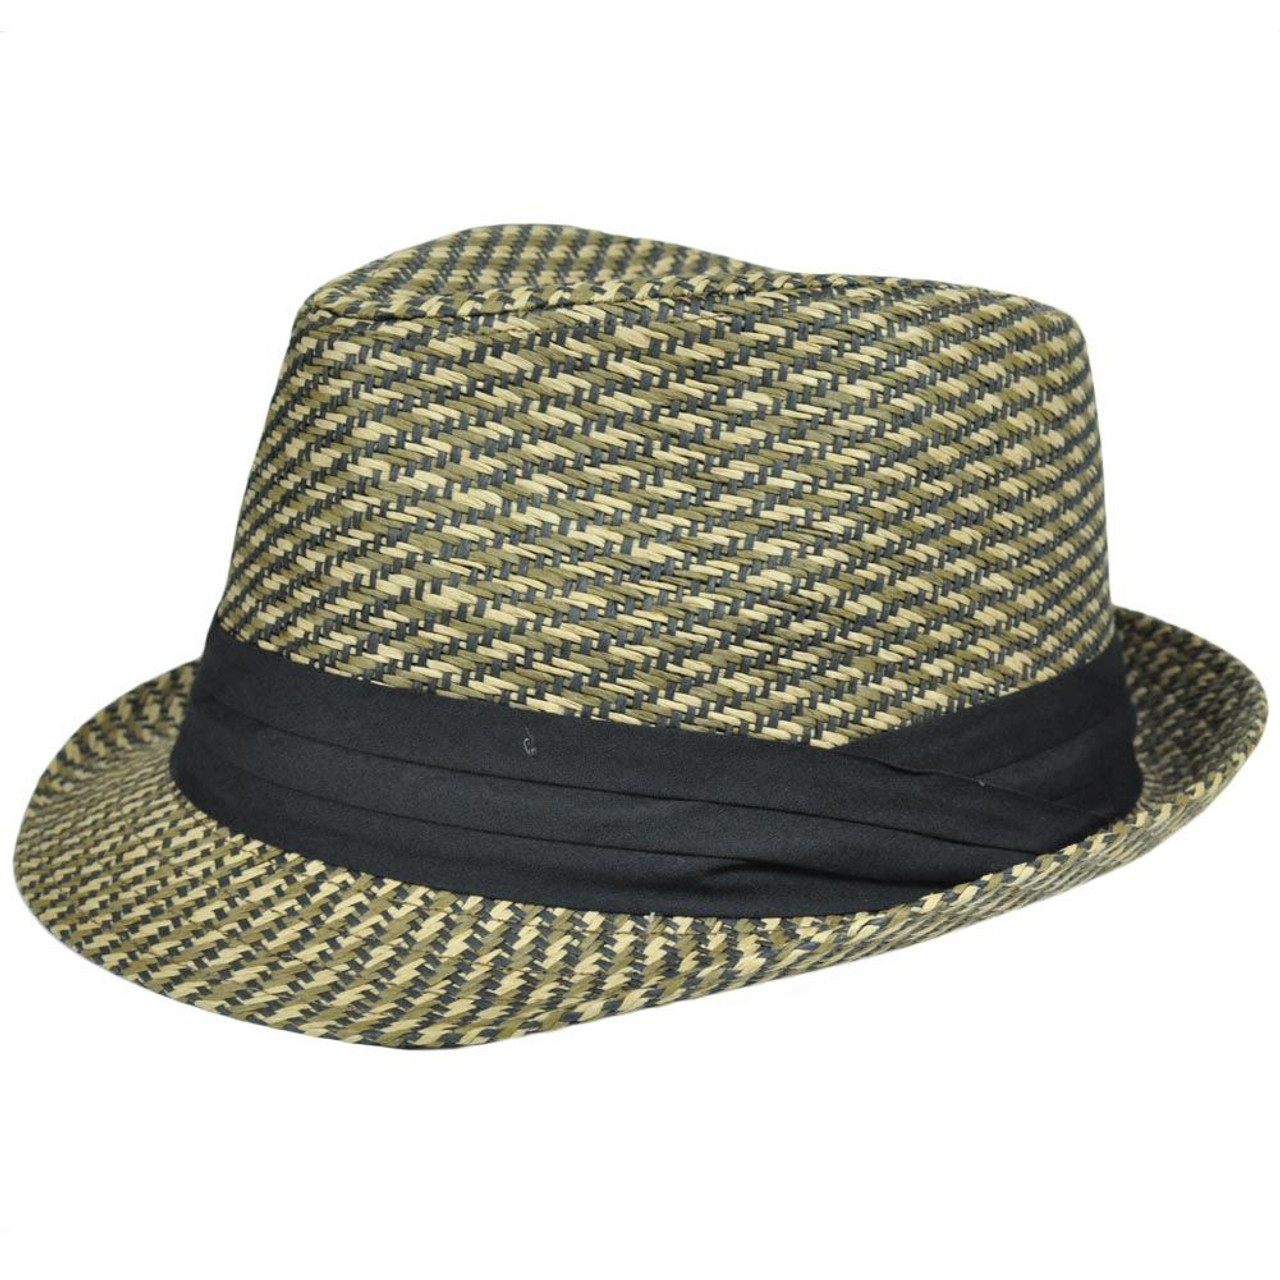 a8eaeedffdc225 Fedora Ribbon Stetson Gangster FD-185 Woven Brown Straw Hat Small Medium  Pattern - Cap Store Online.com